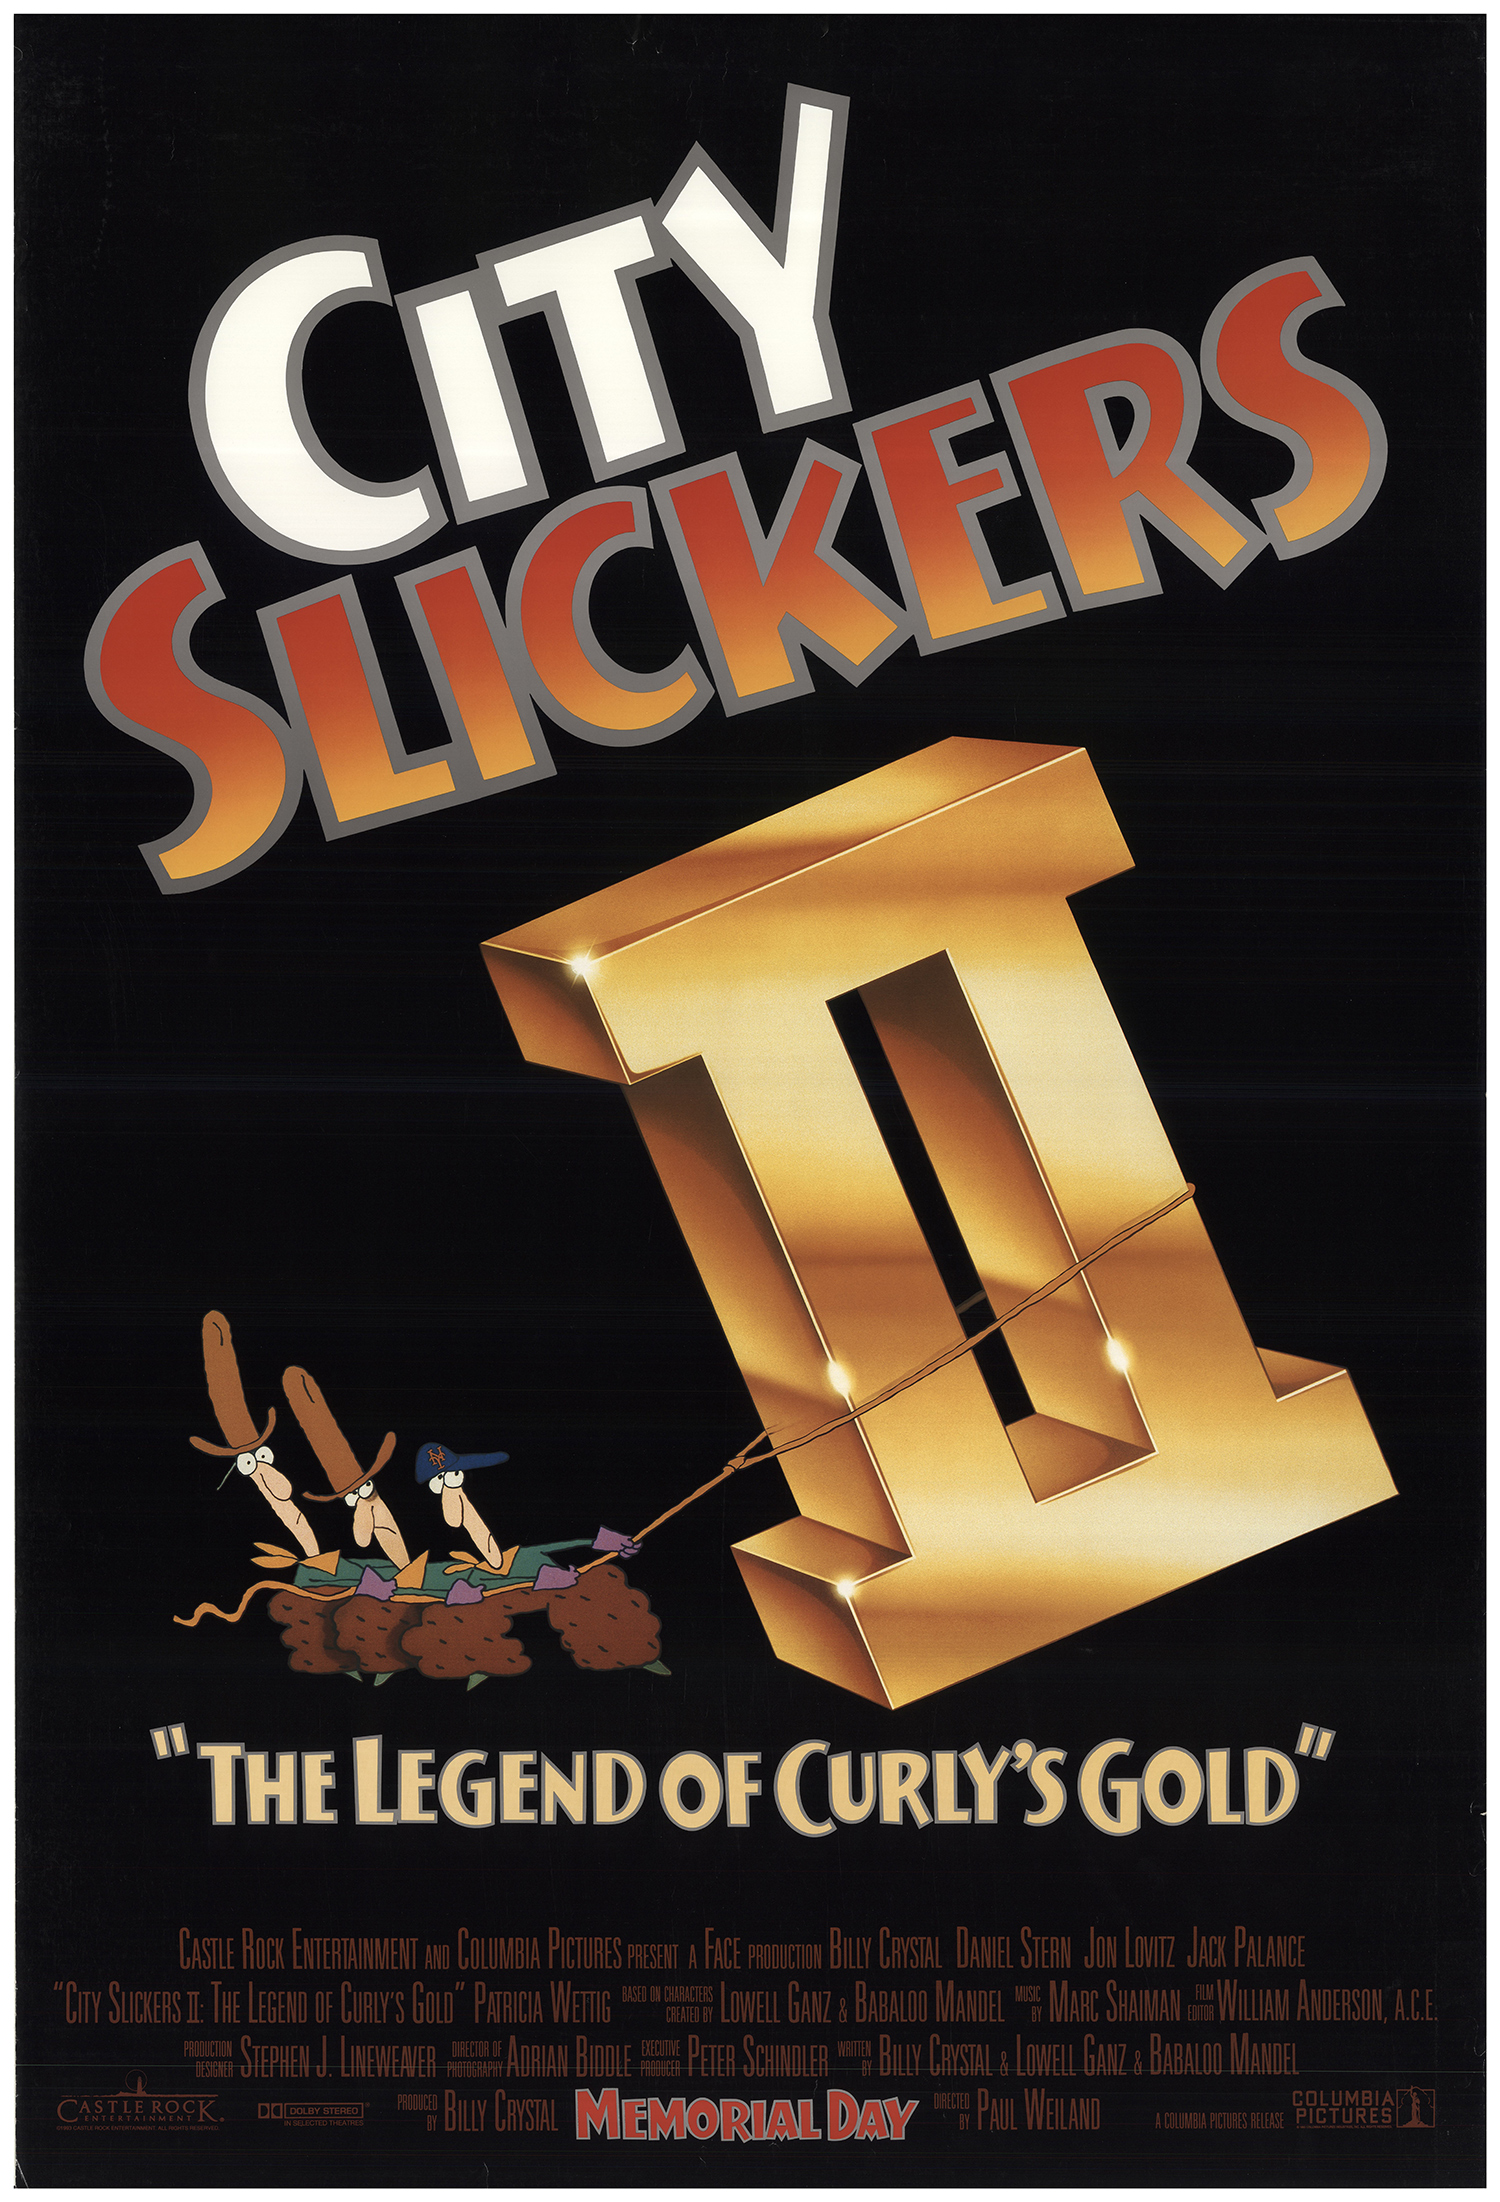 City Slickers II: The Legend of Curly's Gold 1994 Original Movie Poster  U S  One Sheet Advance FFF-74357